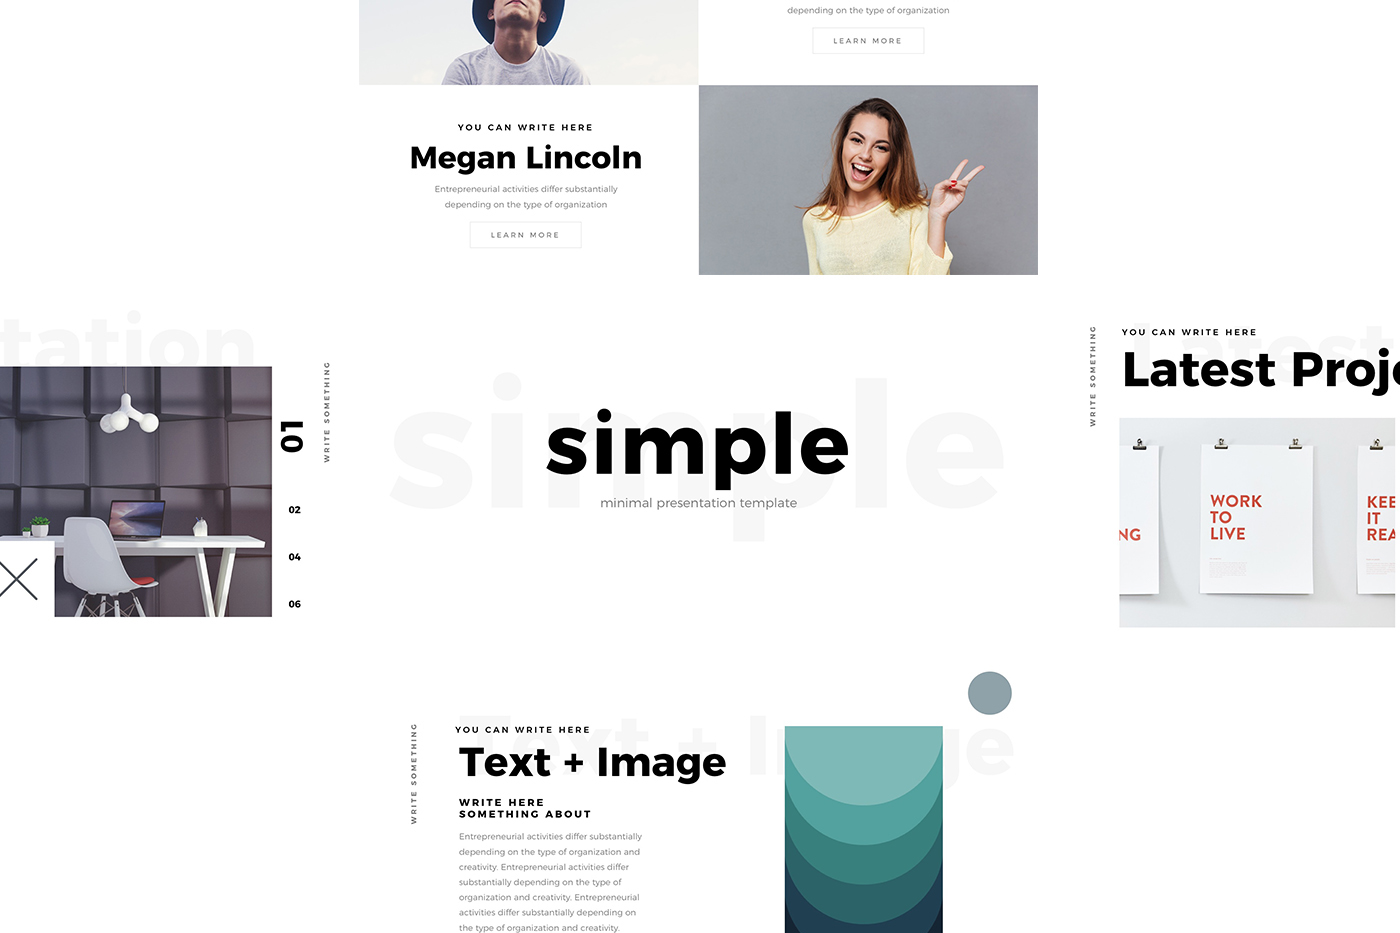 Free Powerpoint Template power point powerpoint templates louis twelve minimal Minimalism business powerpoint themes creative pitch deck